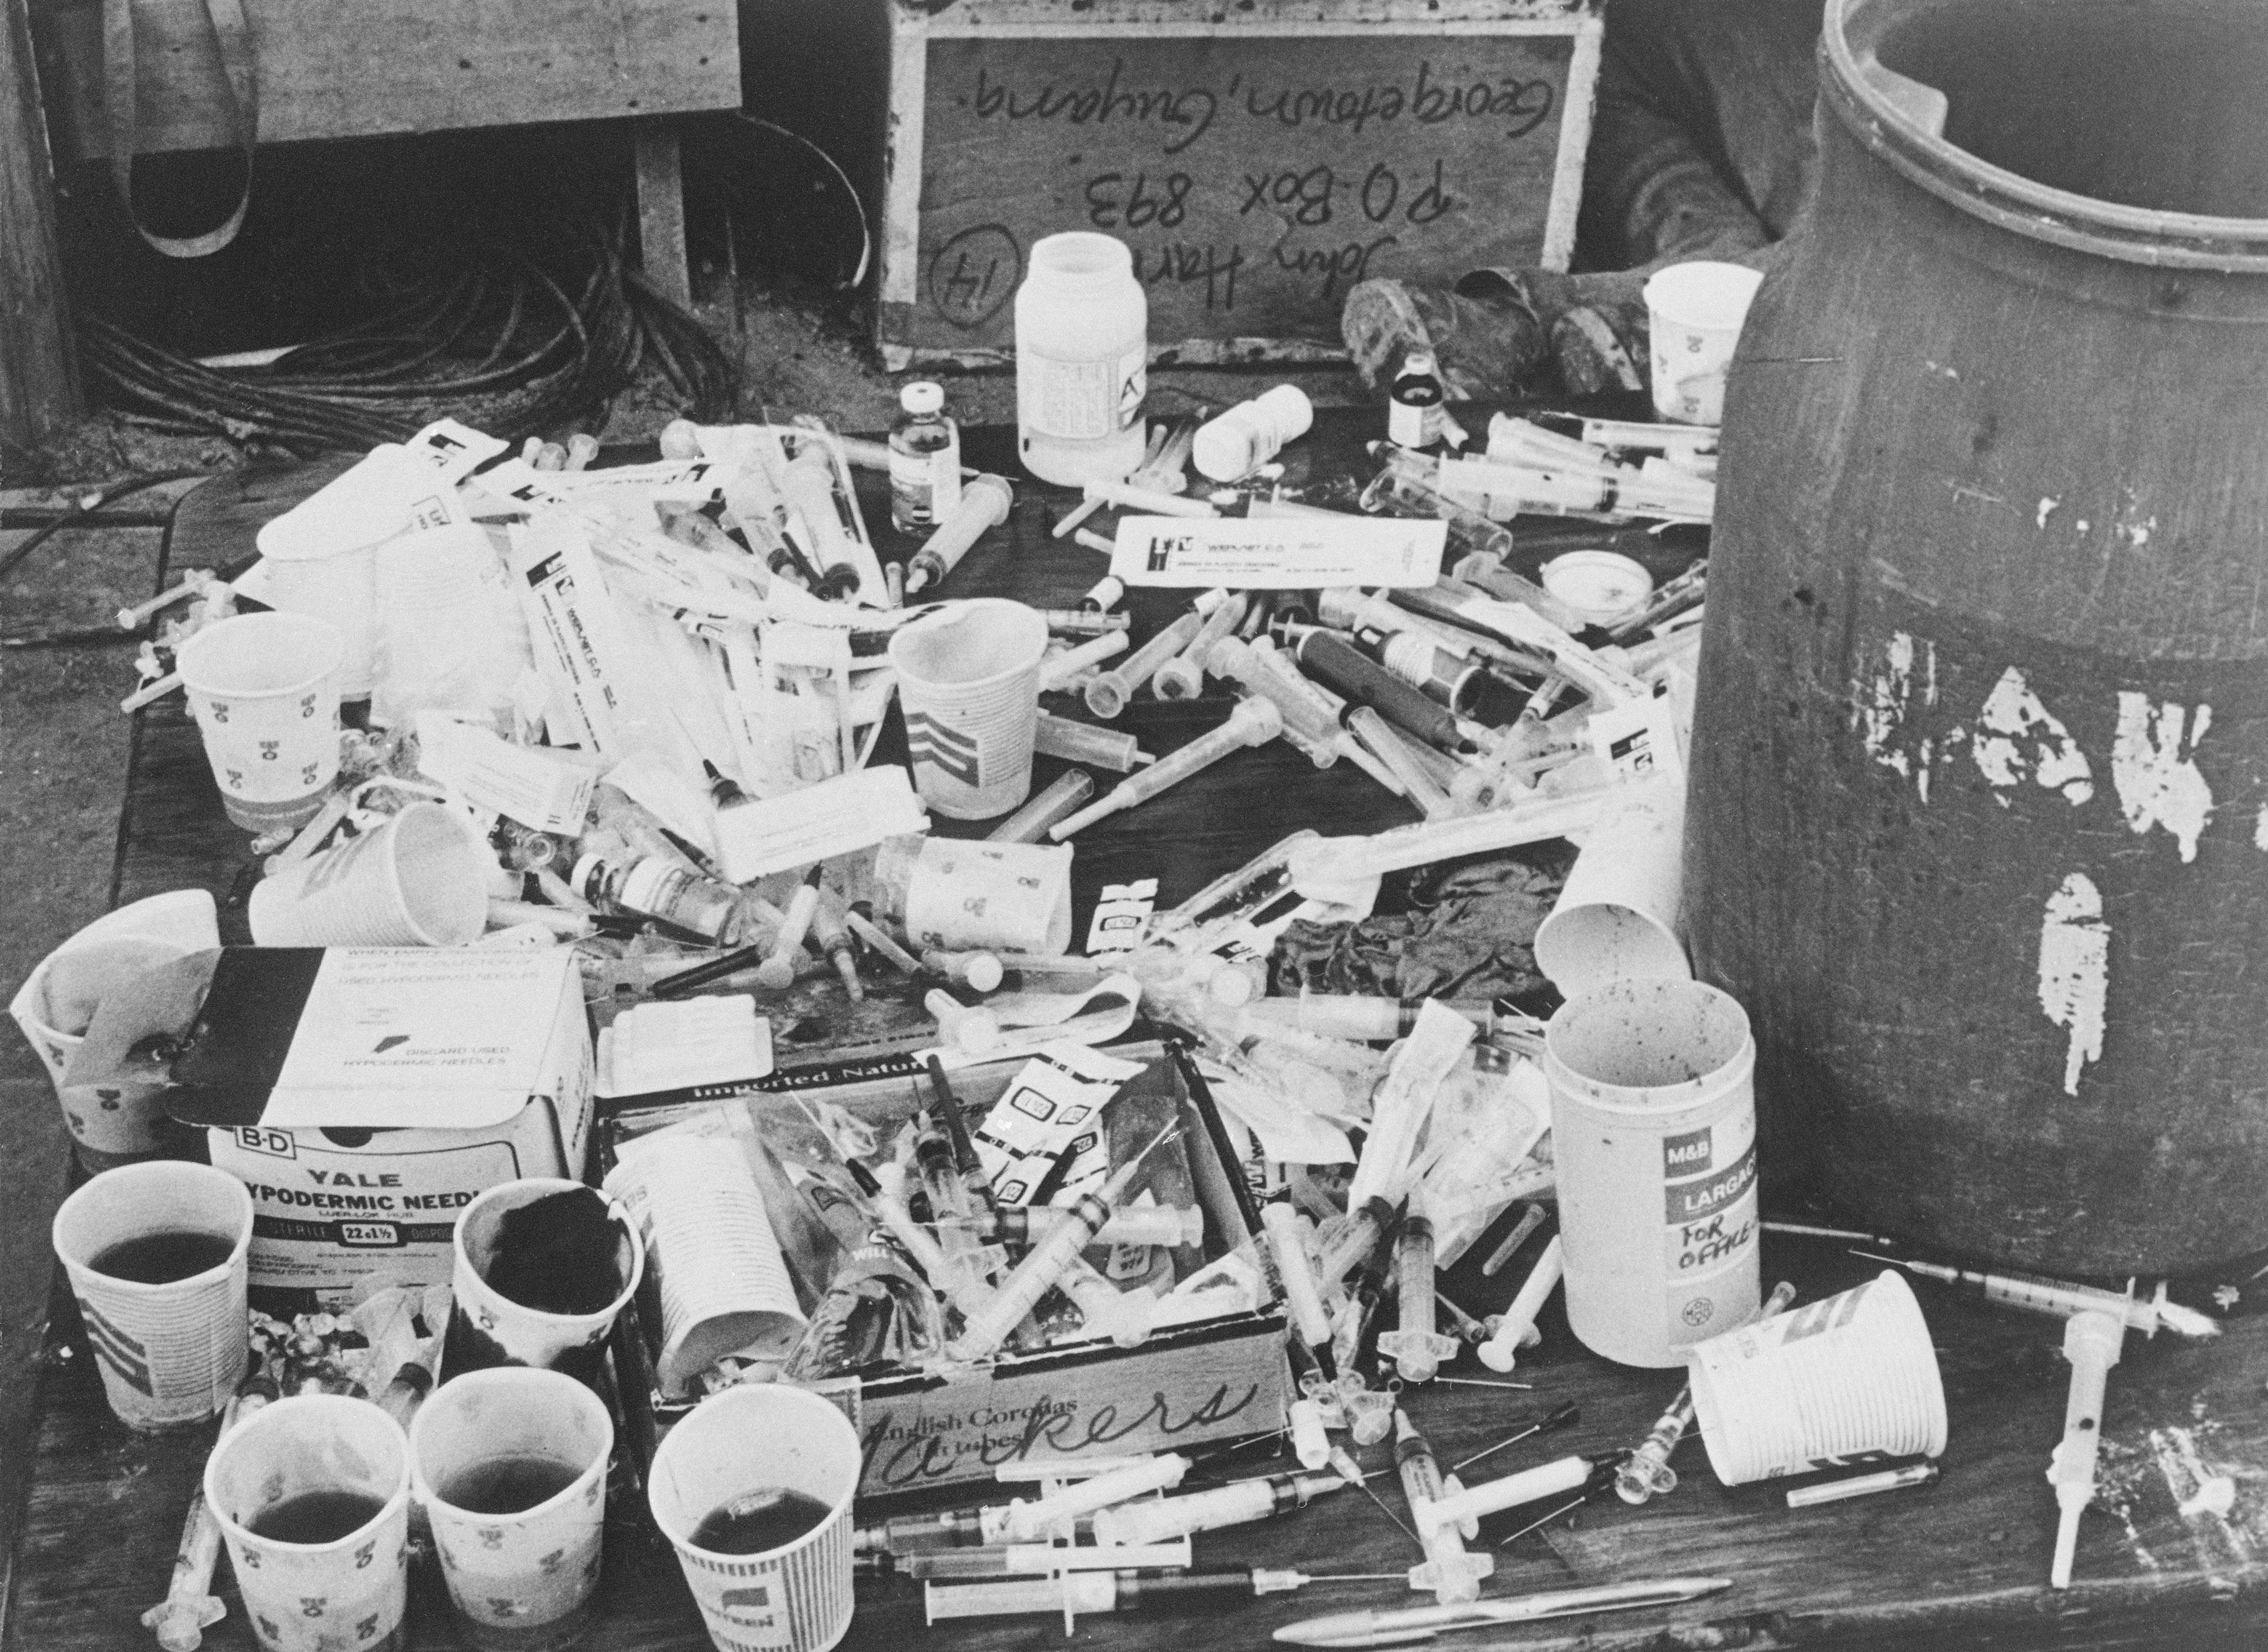 Pile of Syringes and Paper Cups on a table in Jonestown.